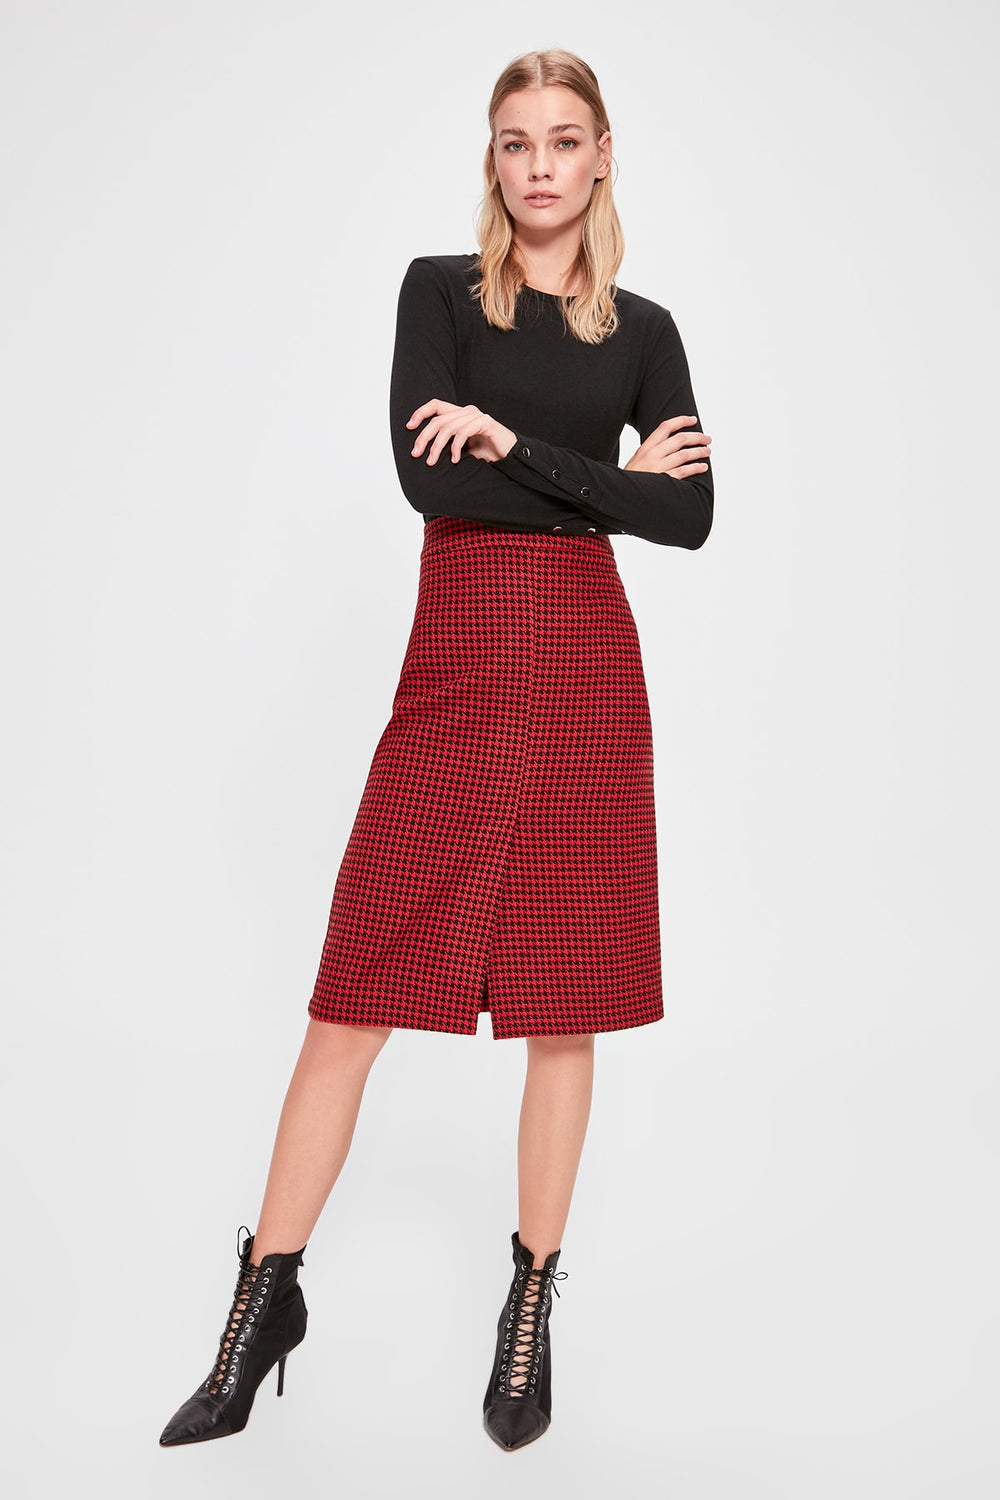 Miss Zut Miss Zut Checkered Skirt Miss Zut &CO